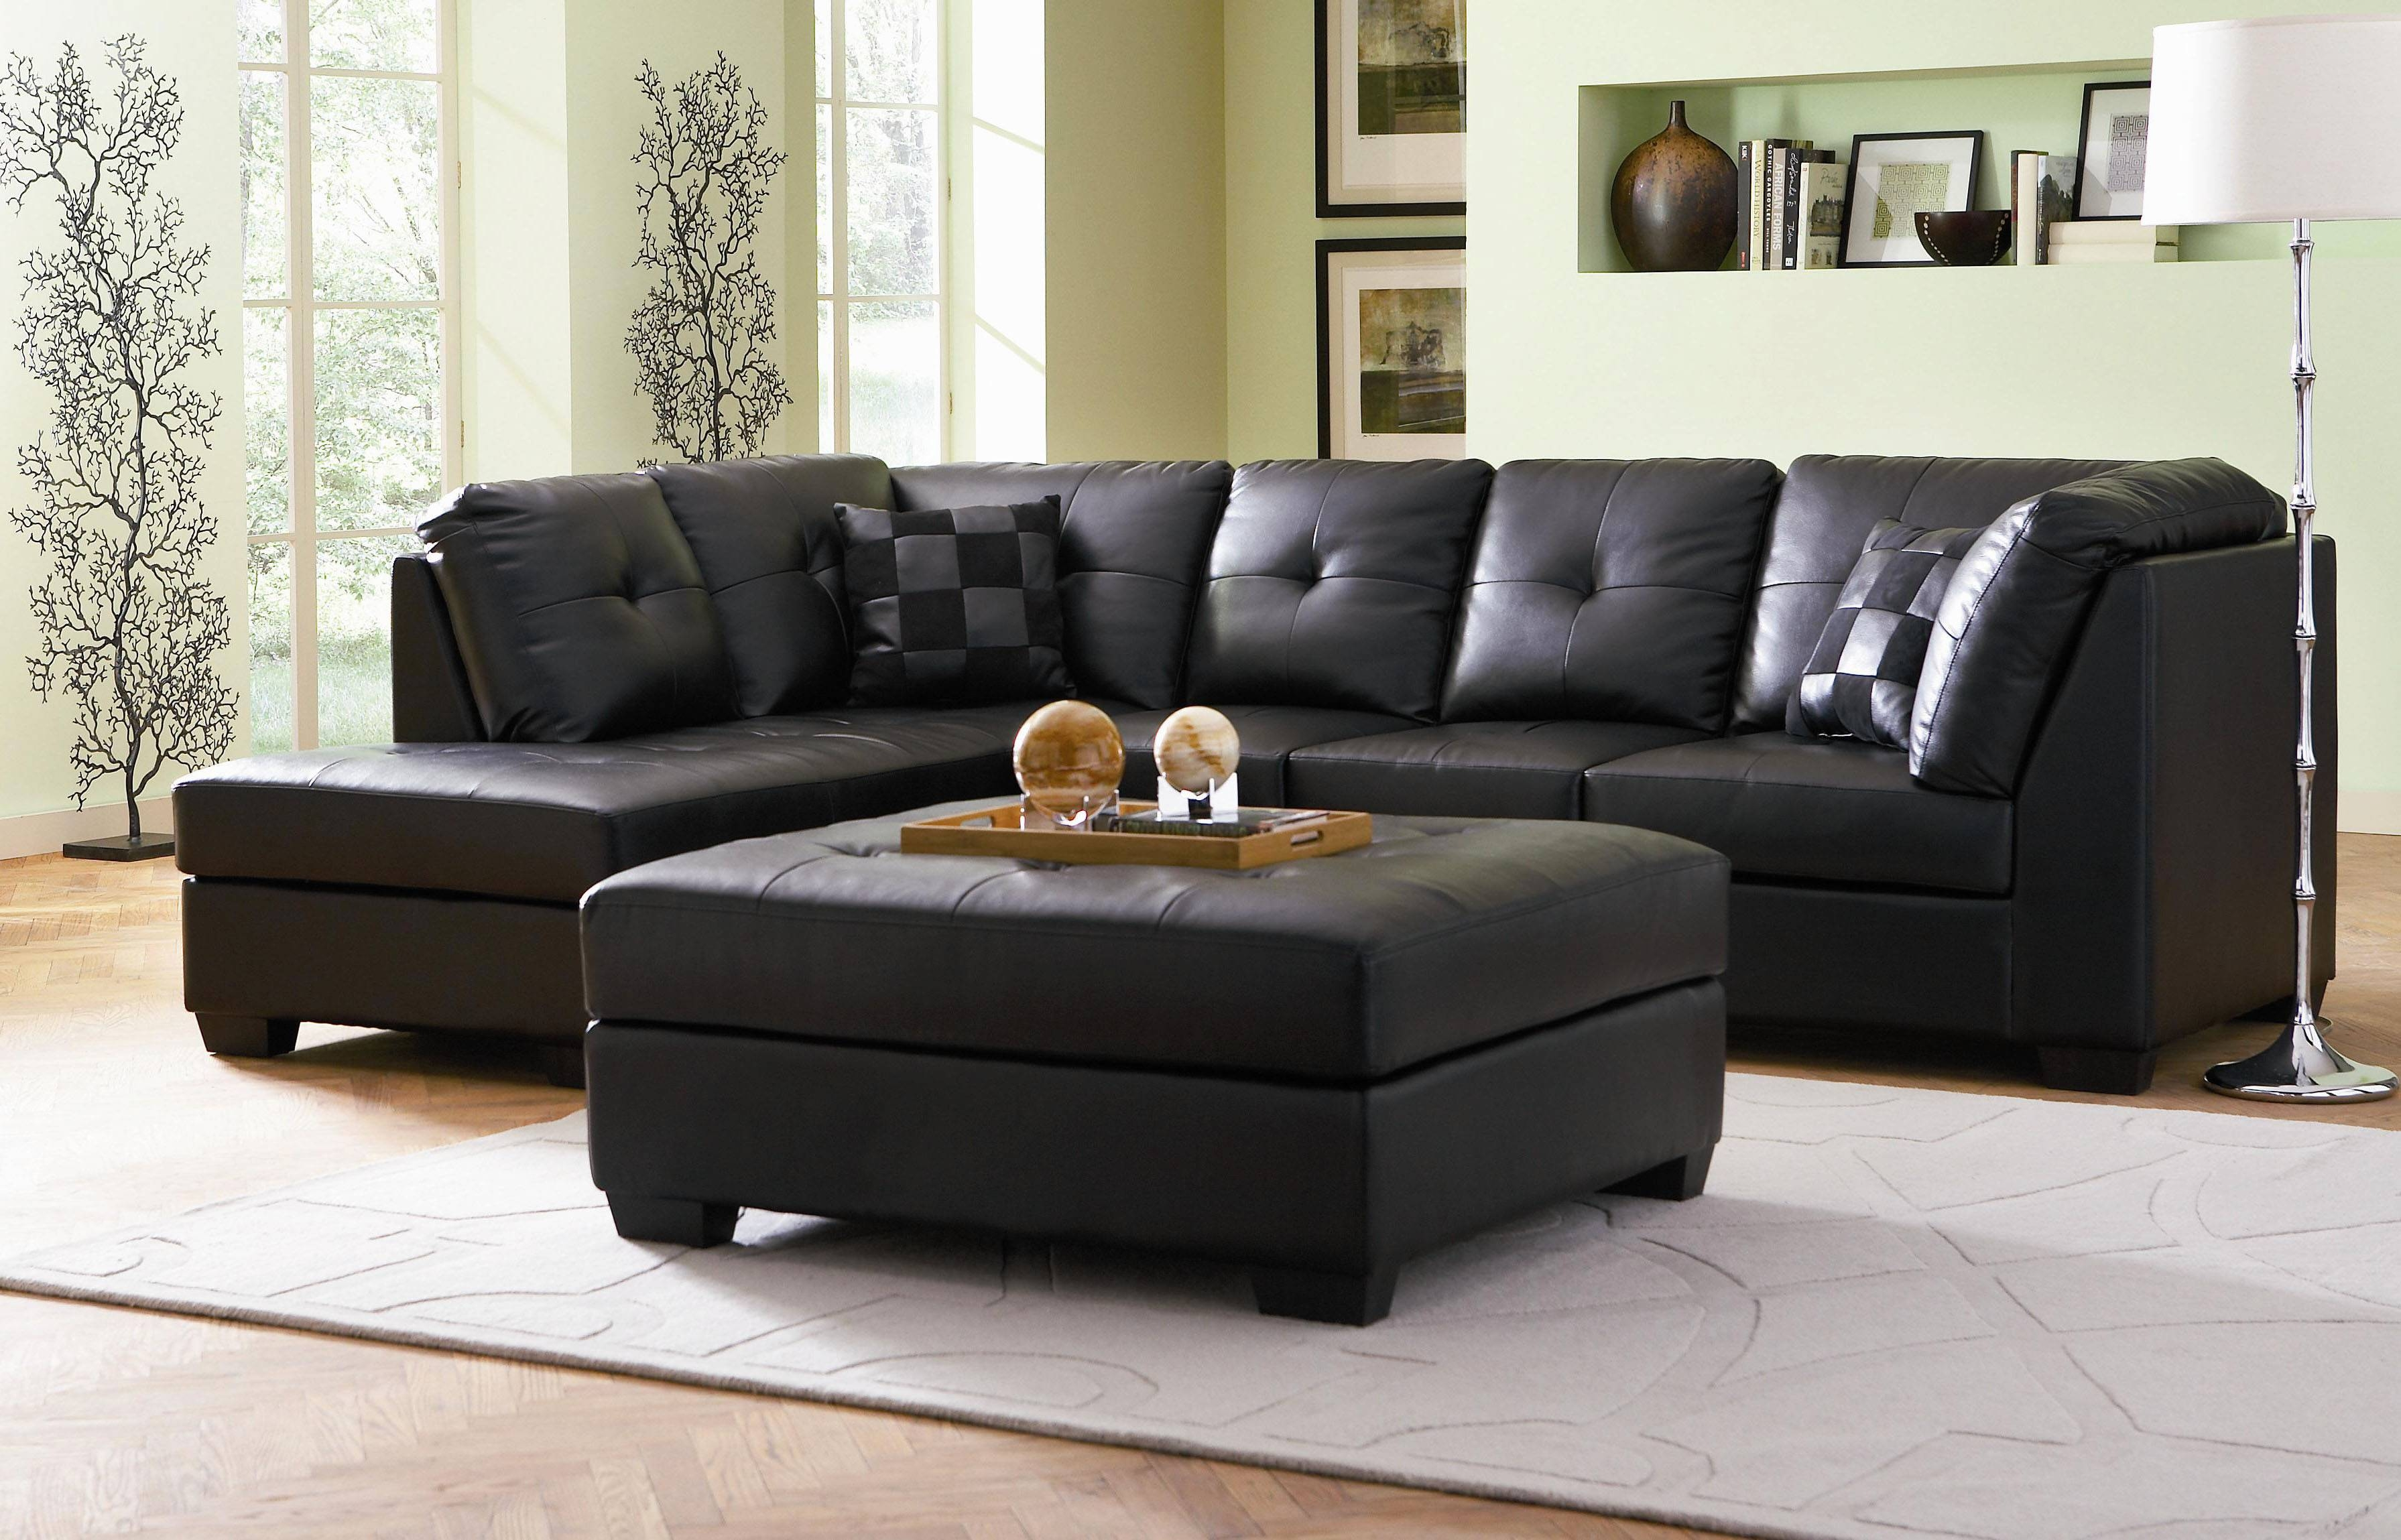 Awesome Small L Shaped Sectional Sofa 11 For Your Leather inside Sectional Sofa San Diego (Image 2 of 30)